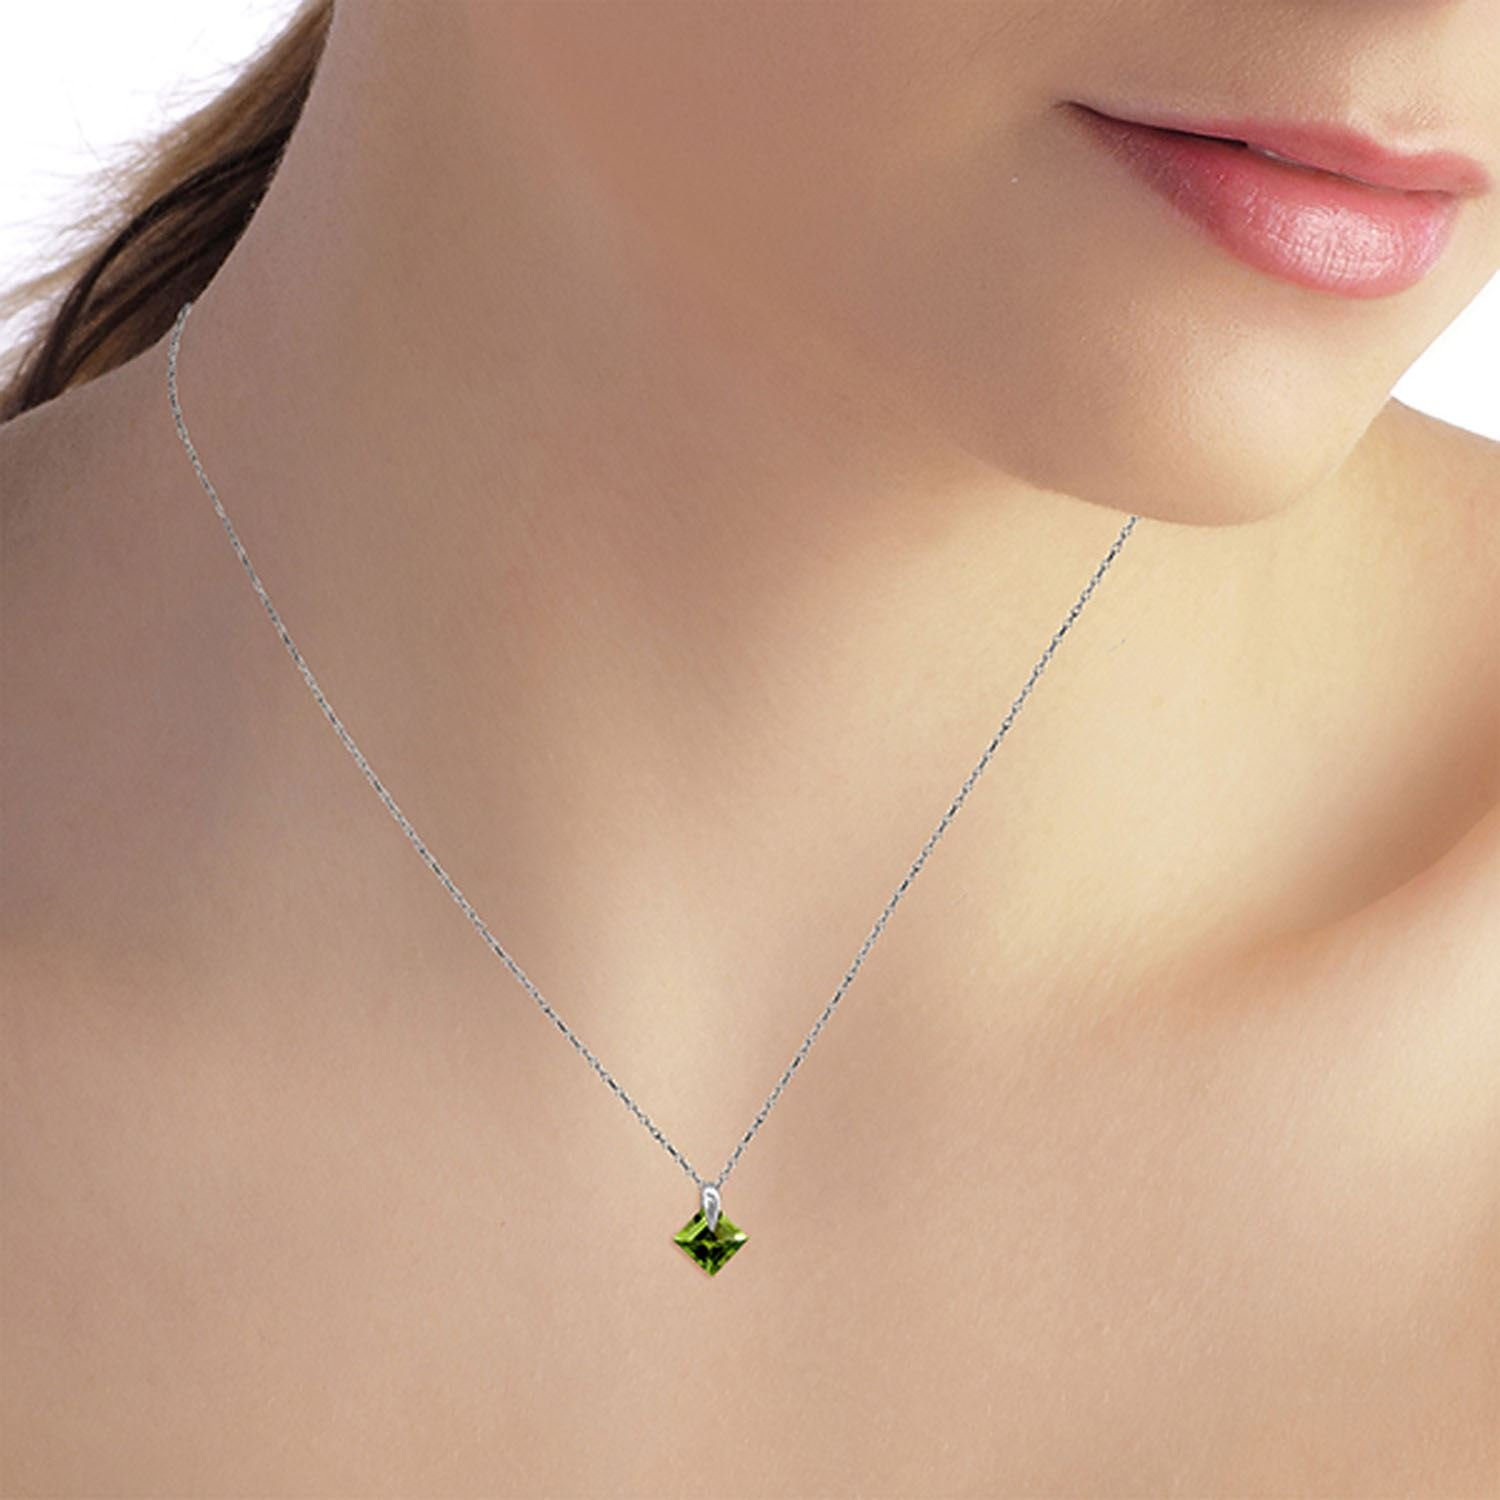 ALARRI 1.16 Carat 14K Solid White Gold My Need Of You Peridot Necklace with 18 Inch Chain Length